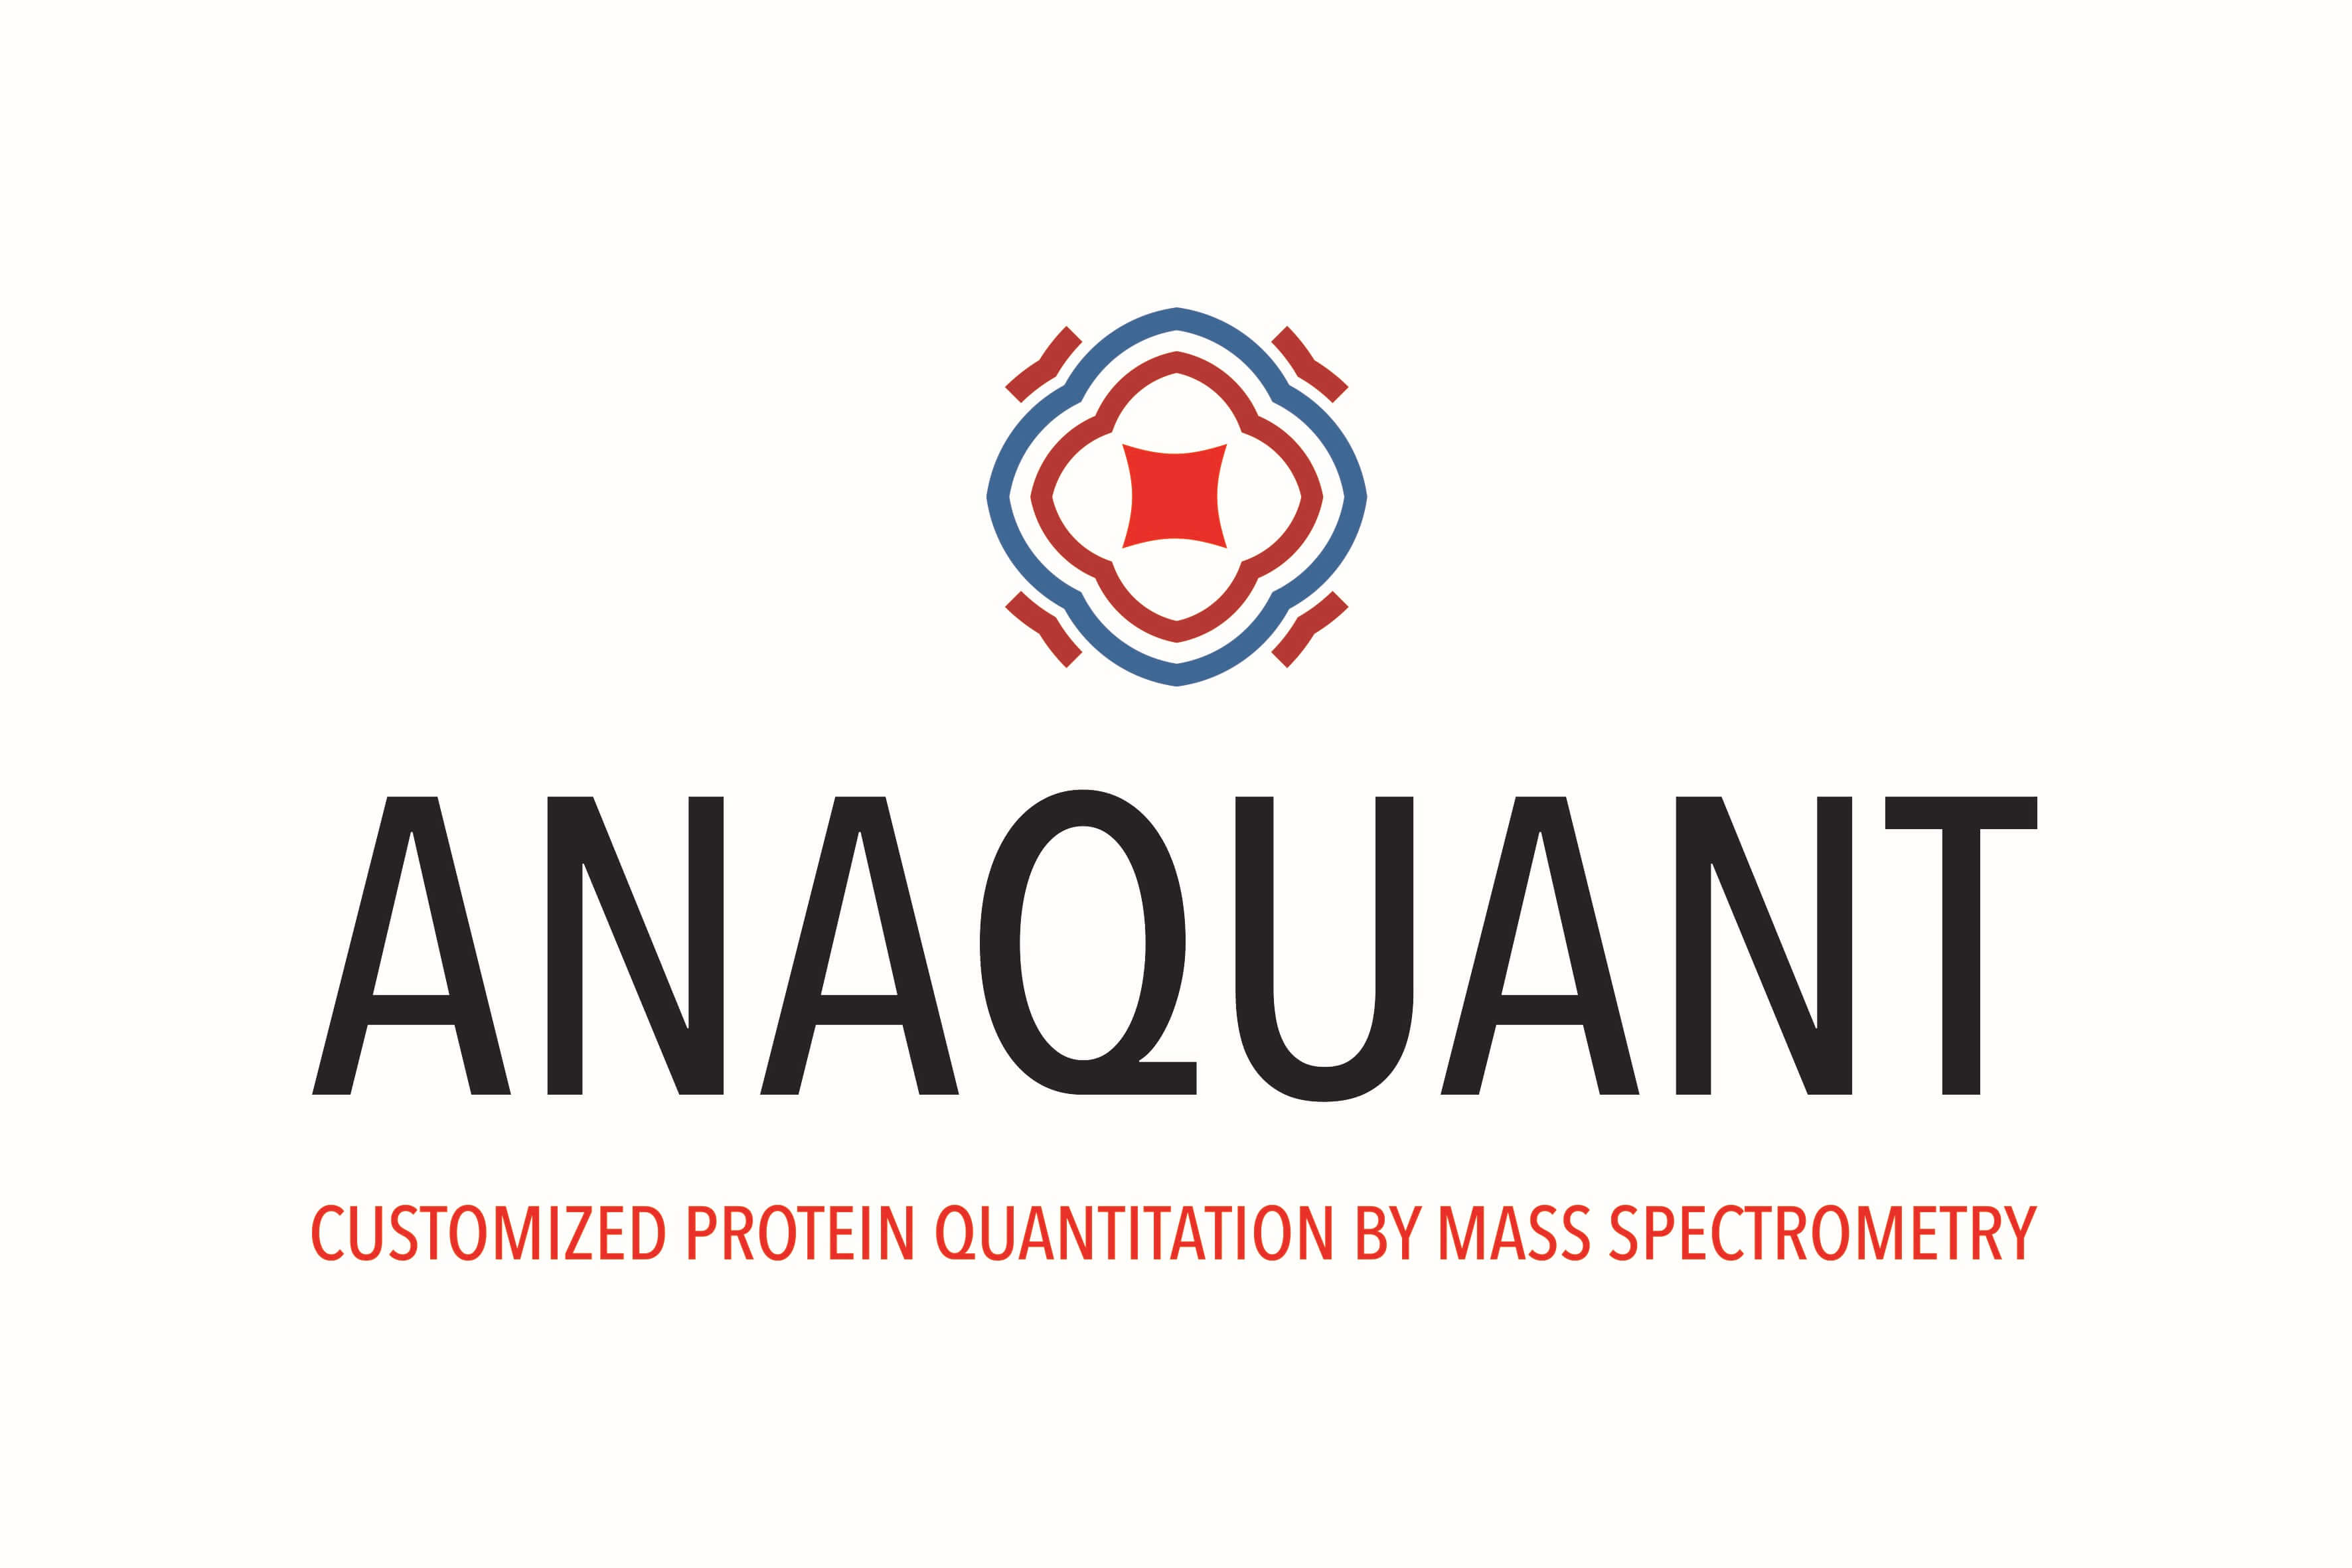 Anaquant